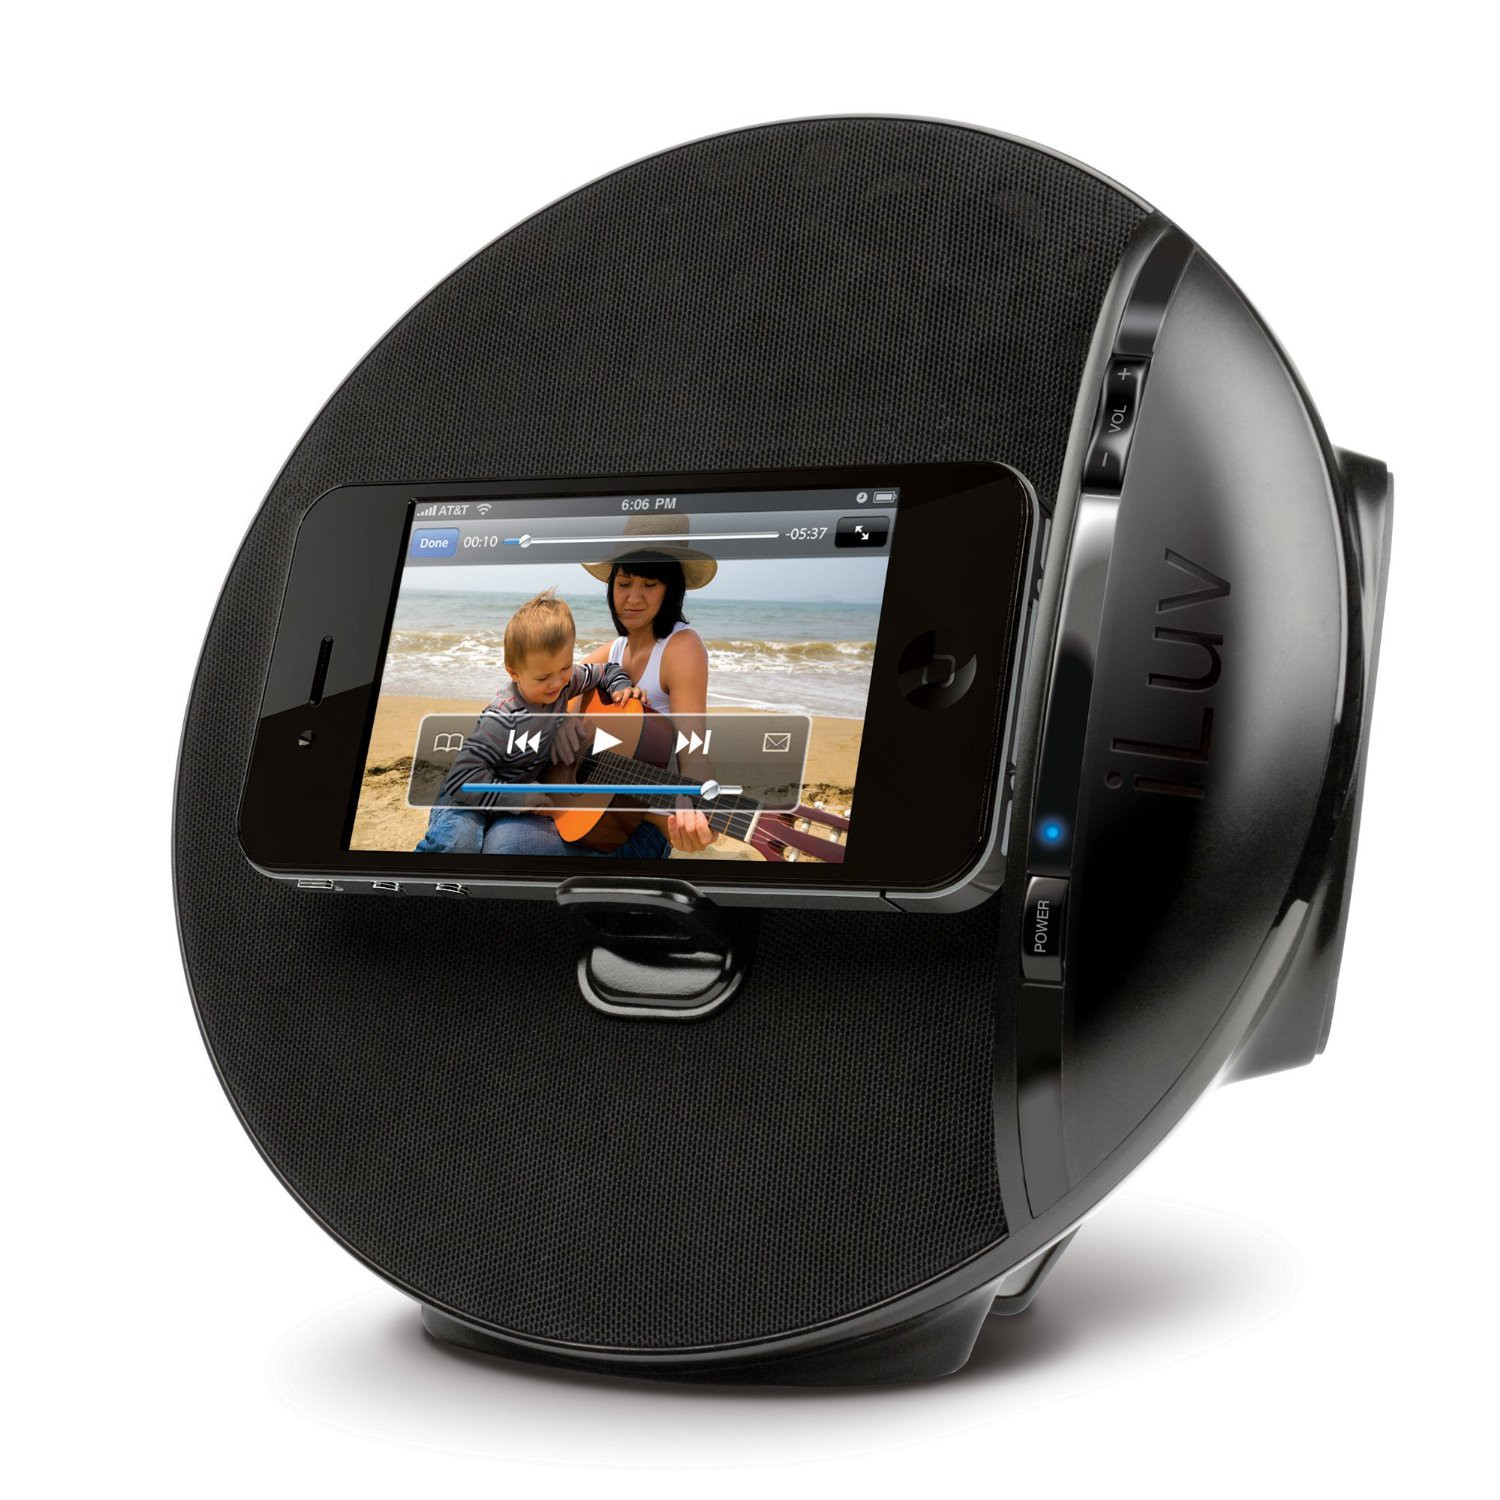 Iluv Isp200blk Stereo Speakers For Mac